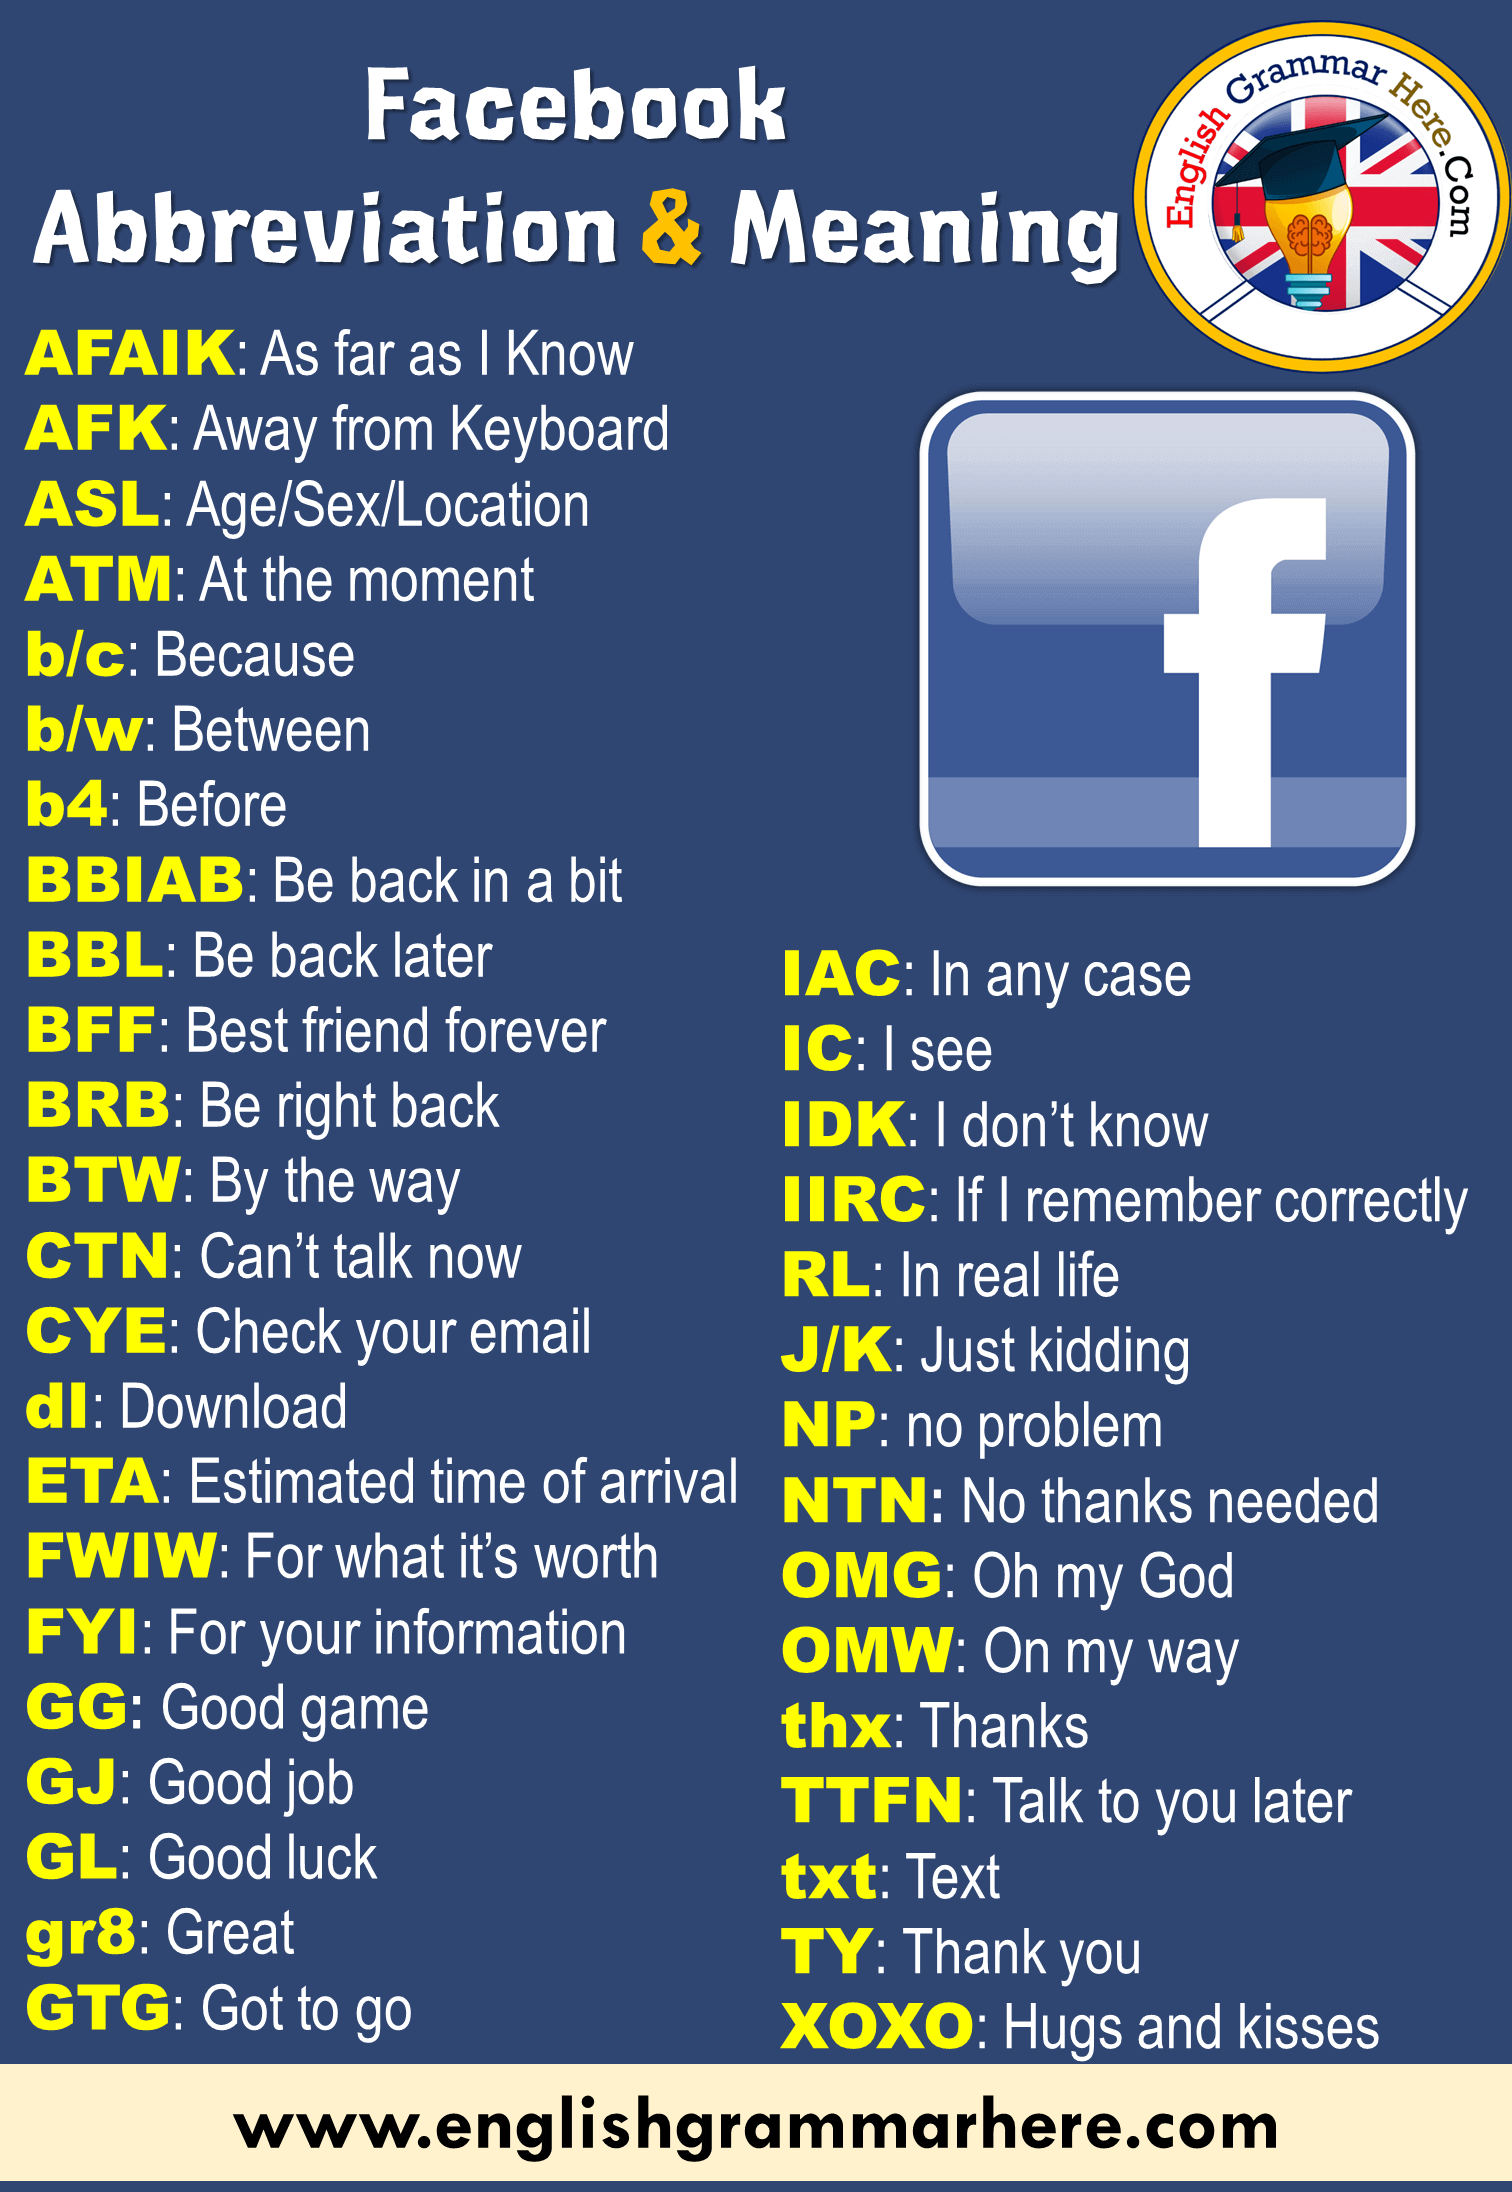 English Facebook Abbreviations & Meanings List